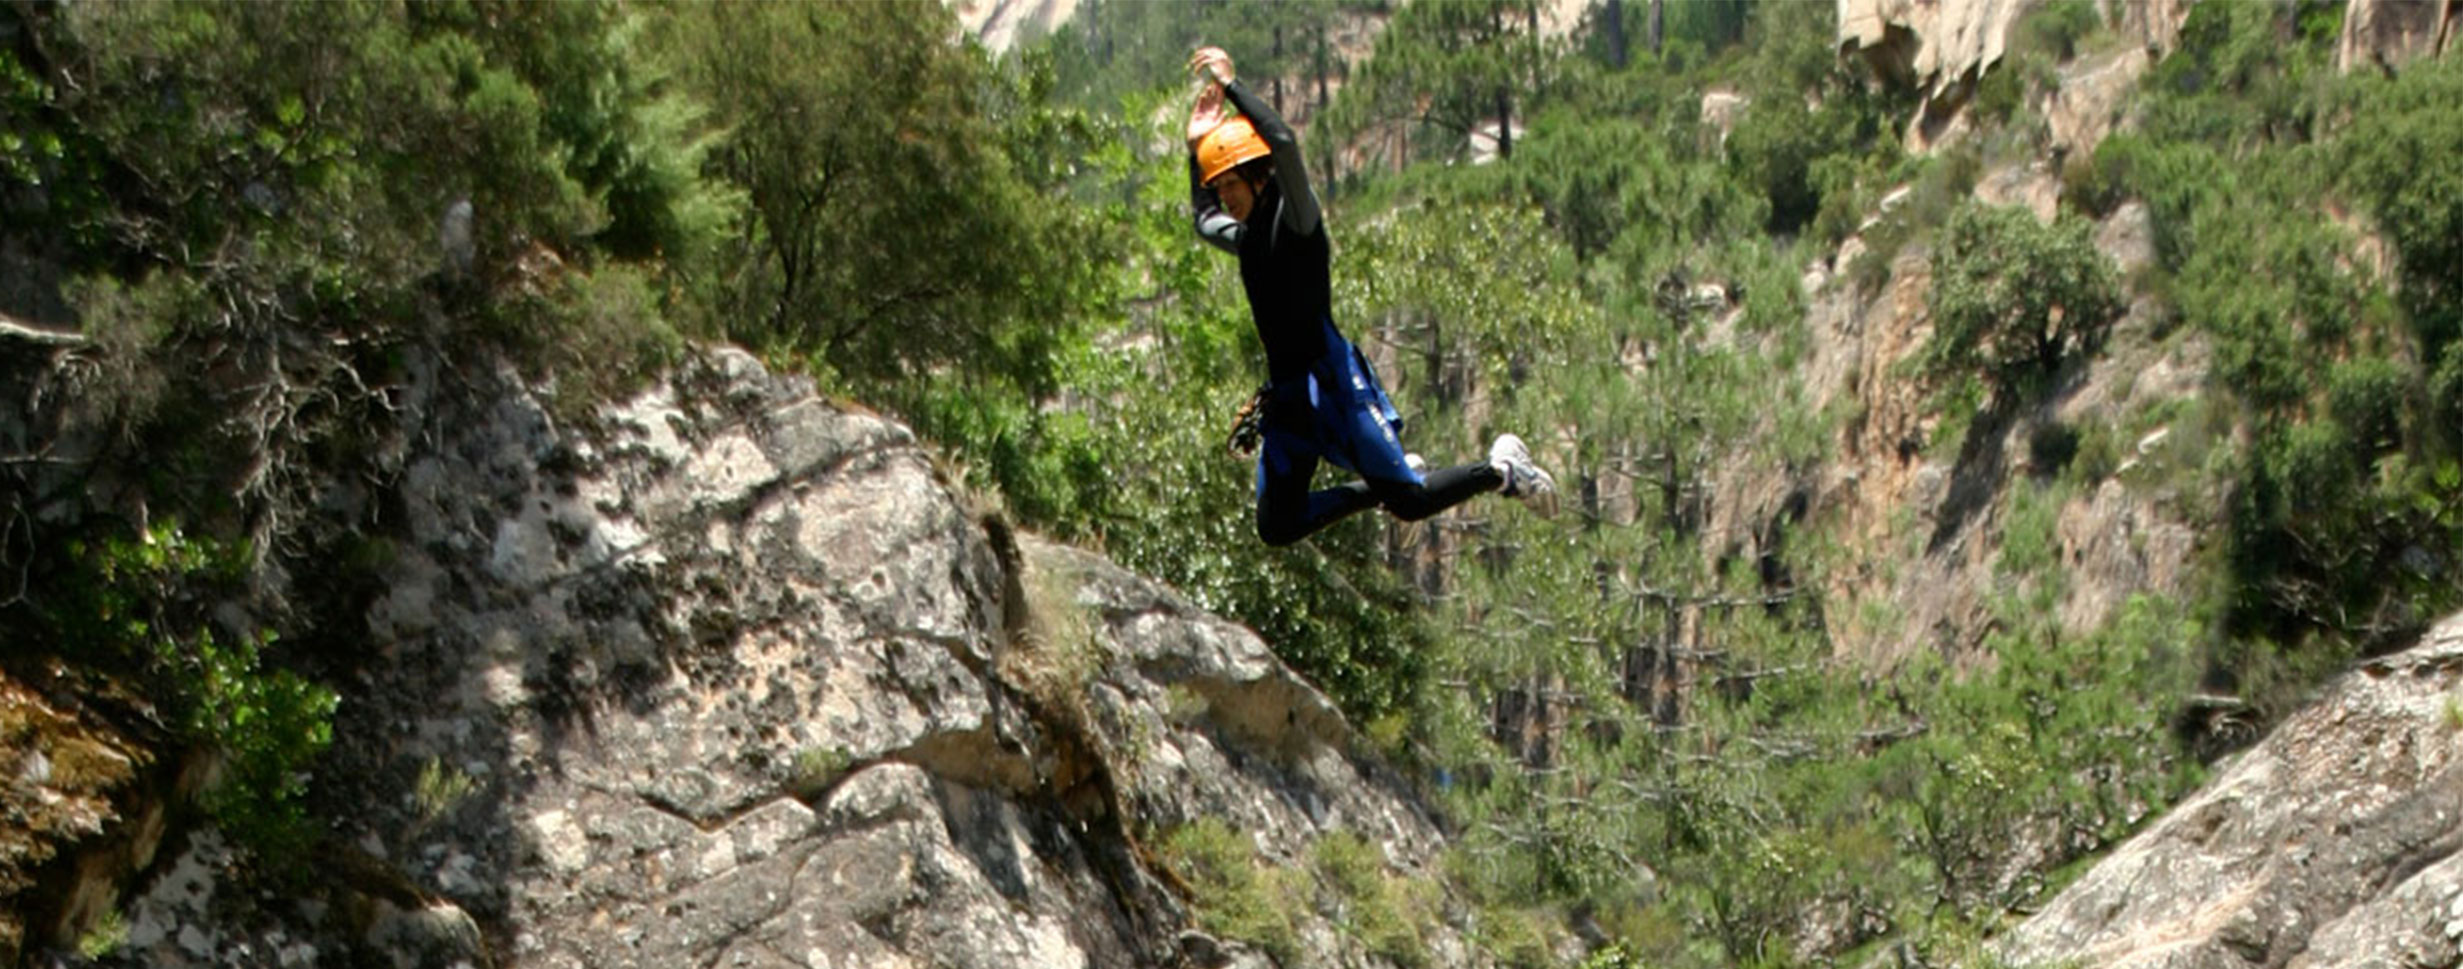 Canyoning corse free ride